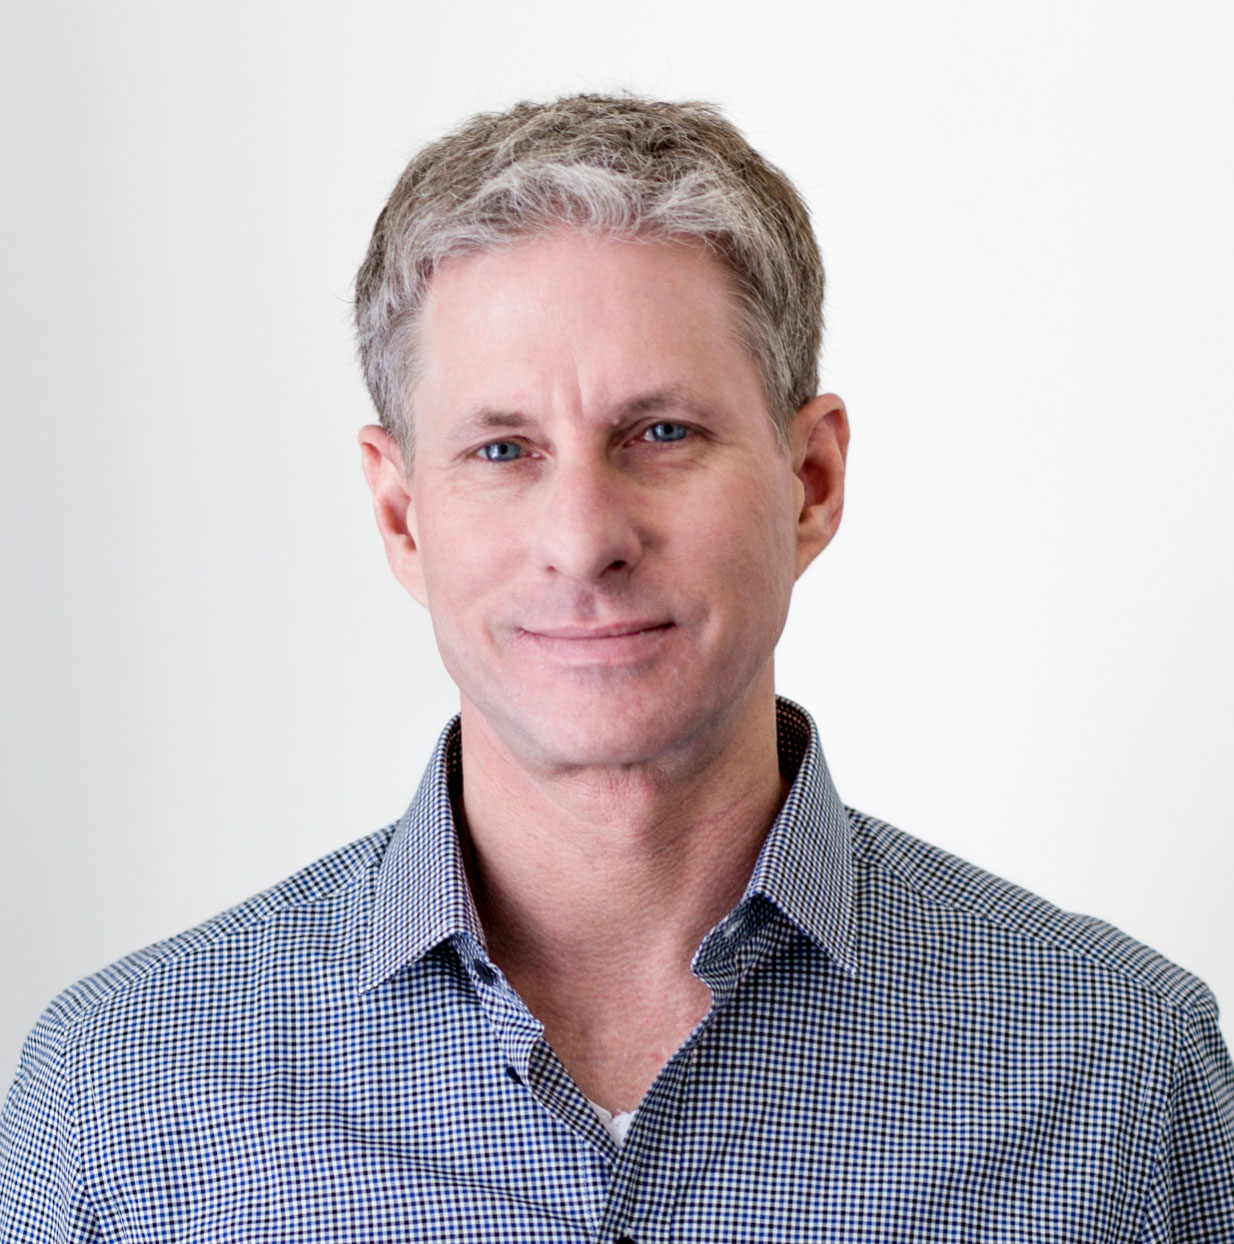 Chris Larsen - Chris Larsen is Executive Chairman of Ripple's board of directors and former CEO and co-founder of Ripple. Prior to Ripple, Chris cofounded and served as CEO of Prosper, a peer-to-peer lending marketplace, and E-LOAN, a publicly traded online lender. During his tenure at E-LOAN, he pioneered the open access to credit scores movement by making E-LOAN the first company to show consumers their FICO score.